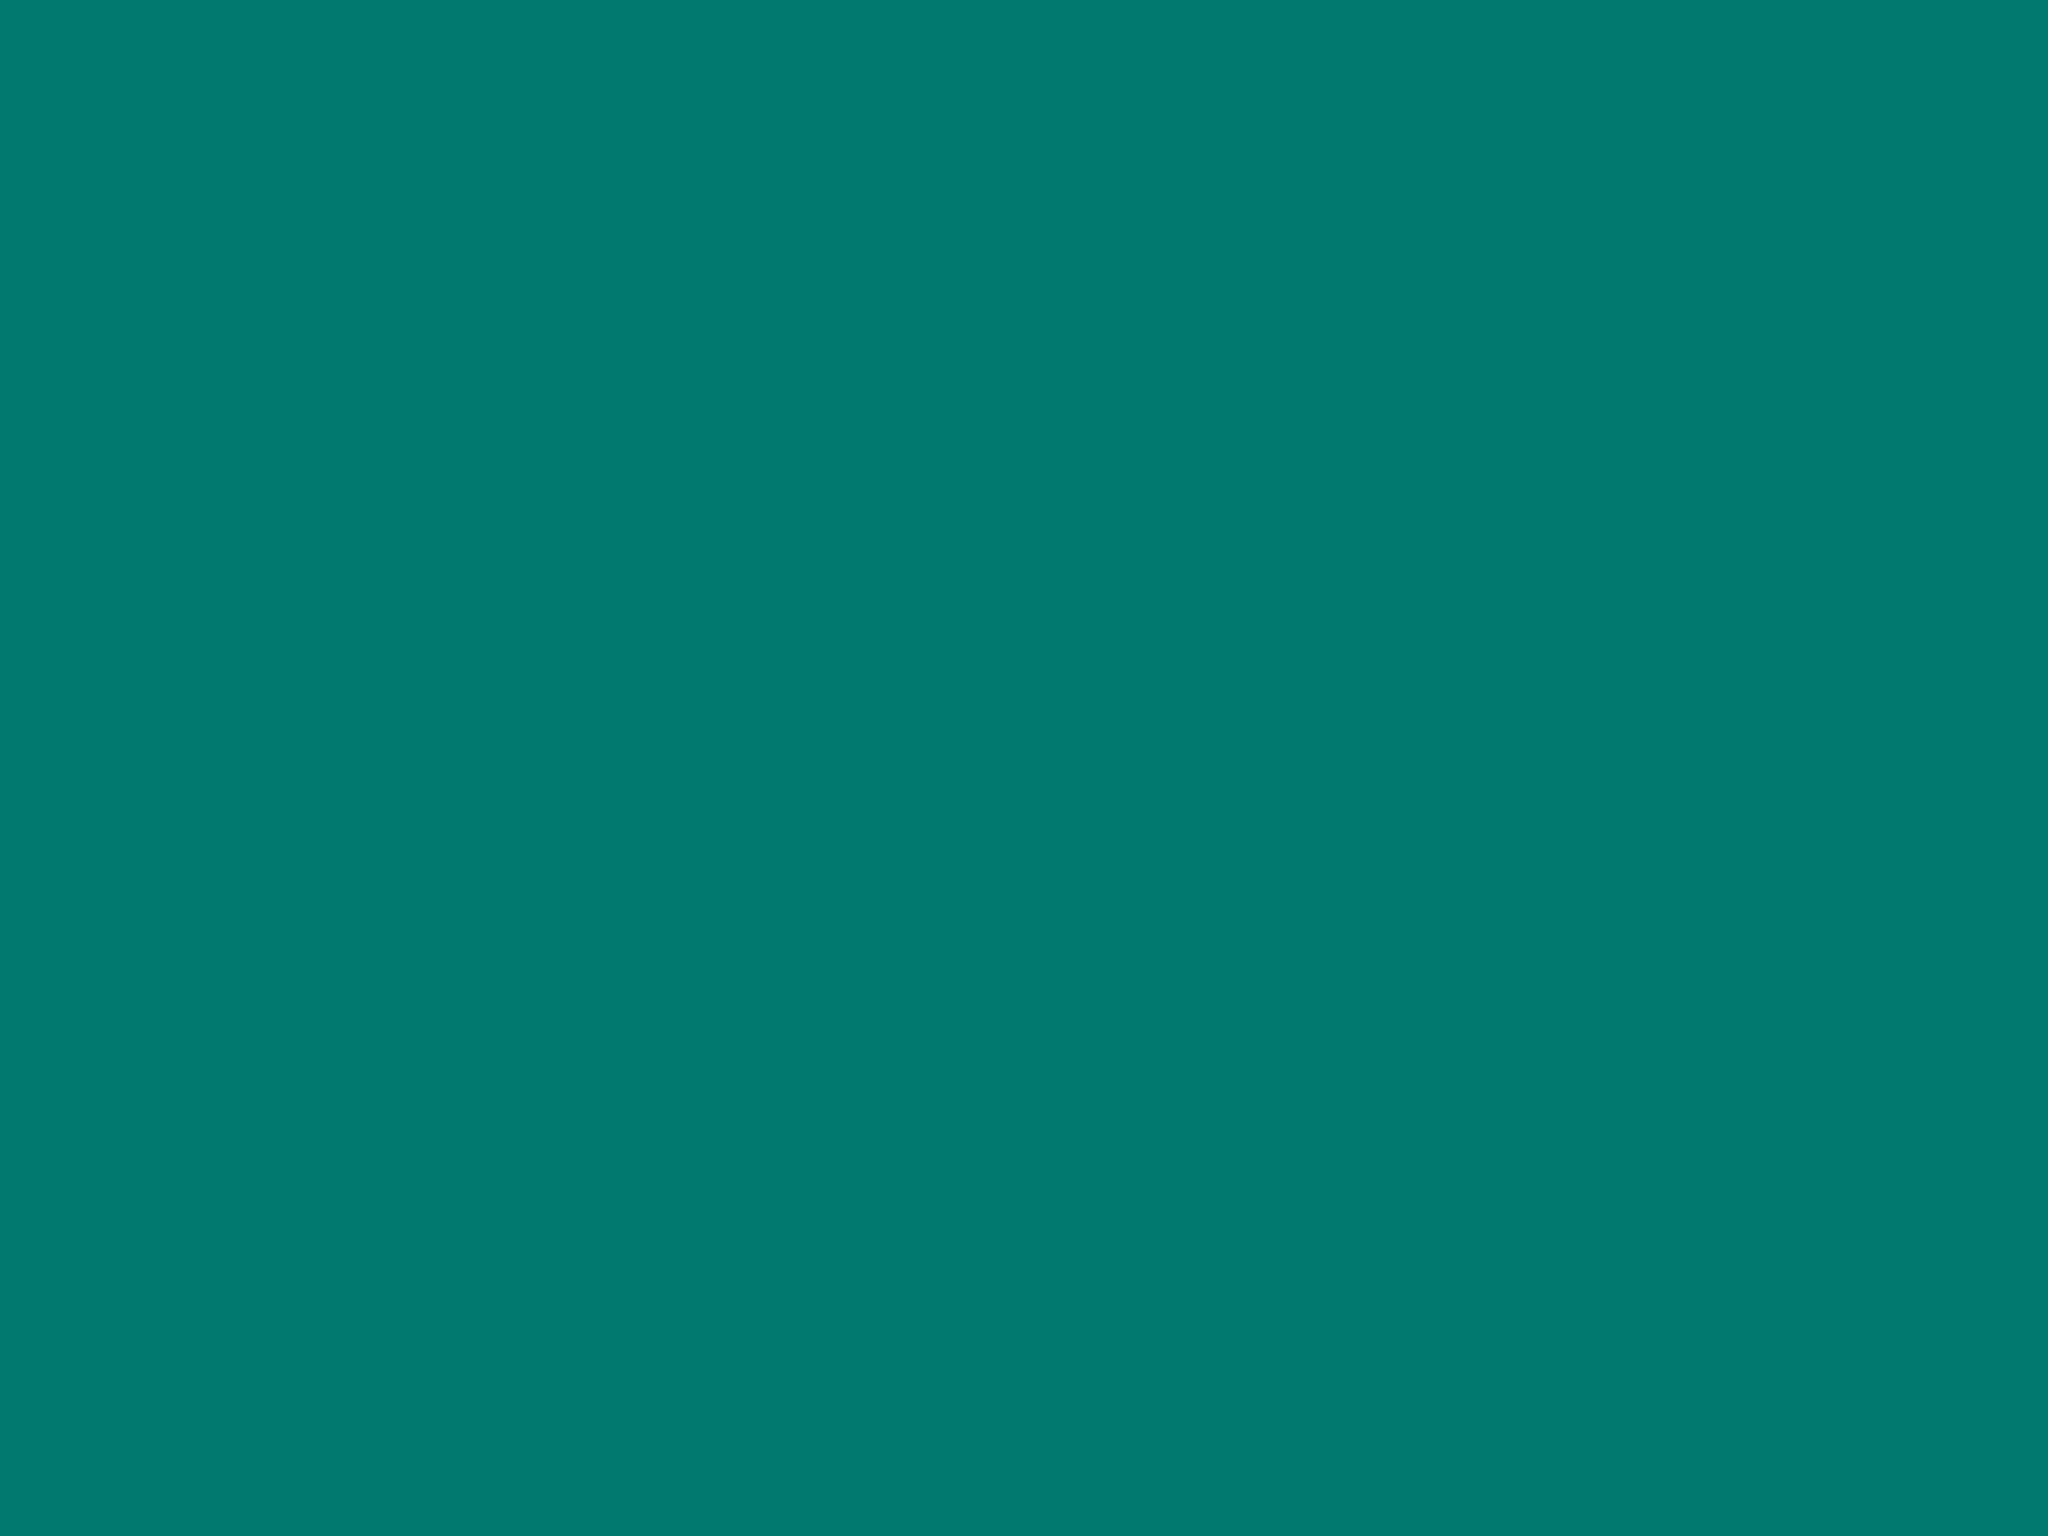 2048x1536 Pine Green Solid Color Background